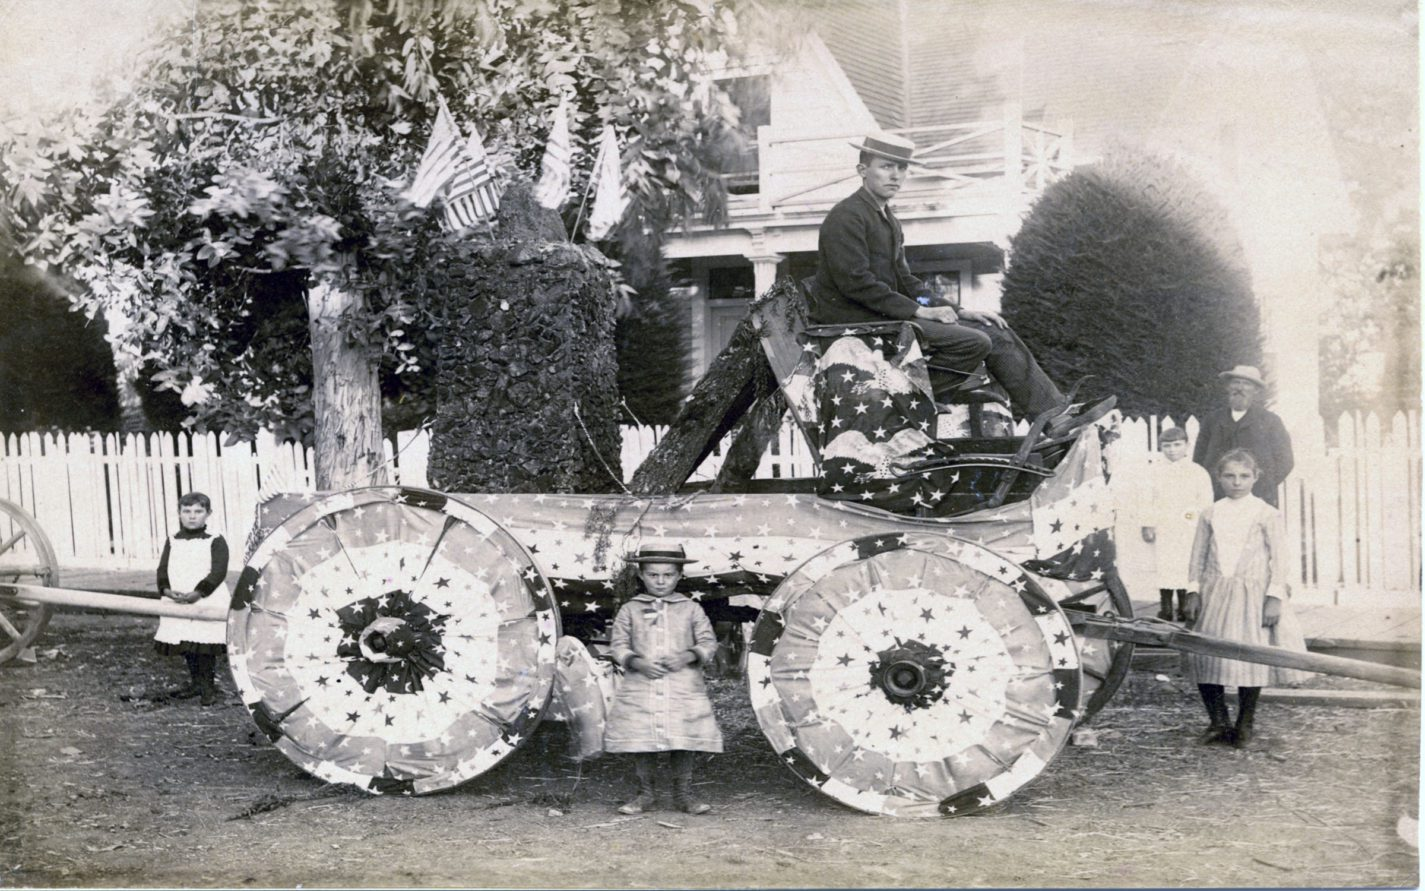 Family gathered around a Fourth of July float decorated with flags and flag bunting in front of a house circa 1880s